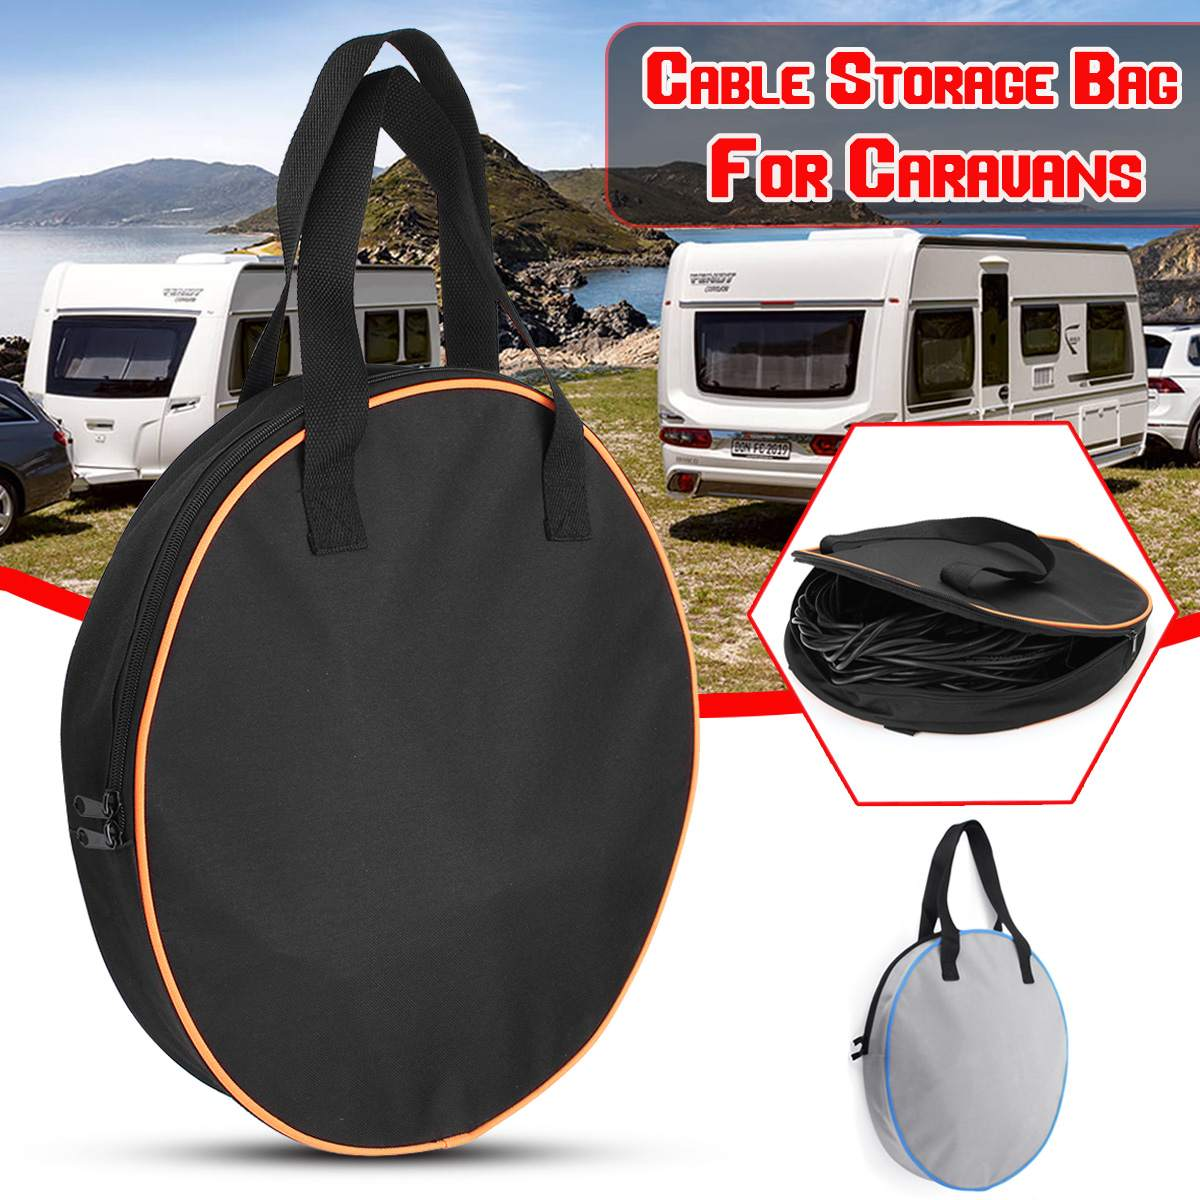 Case Cable-Organizer Storage-Bag Caravans-Wire Motorhome RV Gardening Heavy-Duty Portable